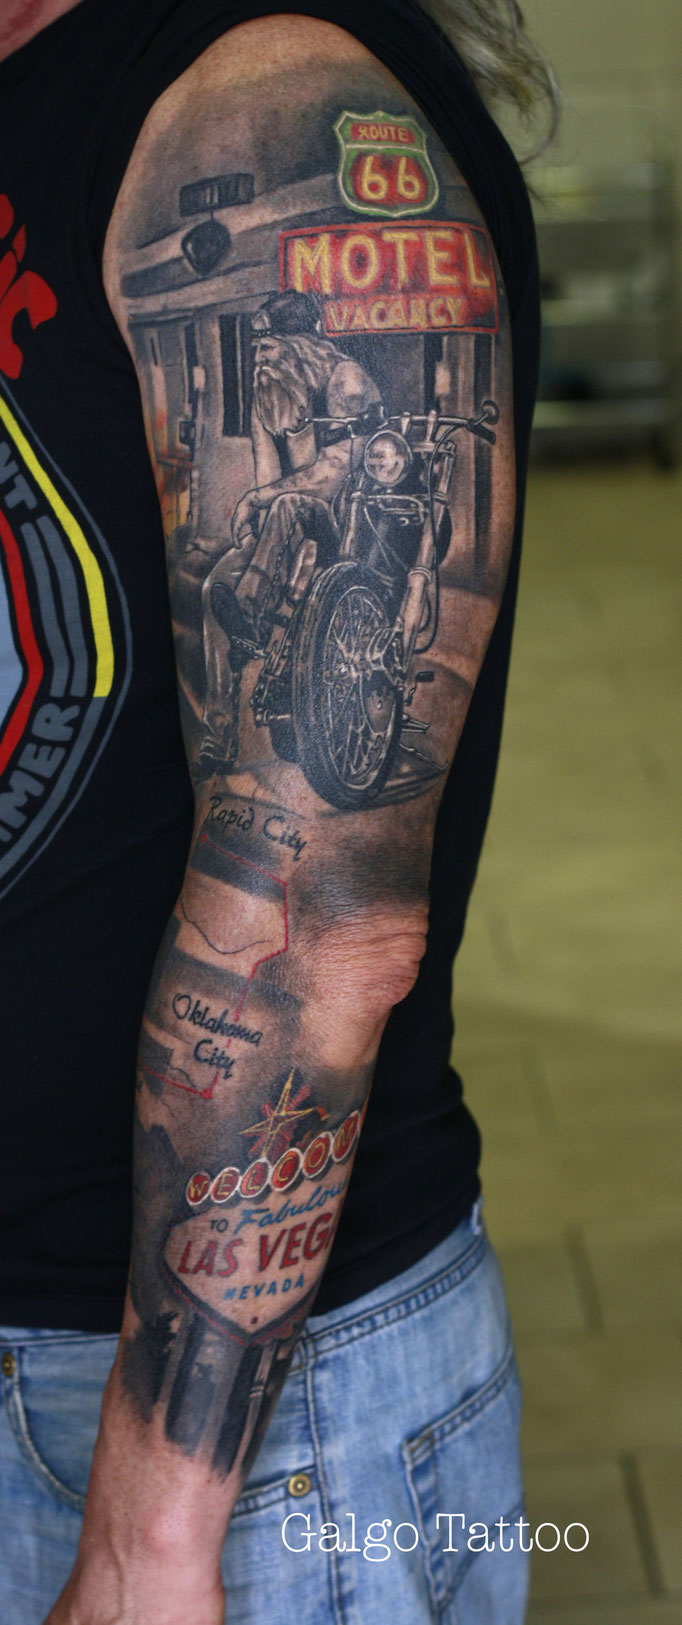 Route 66 full sleeve realistic tattoo.